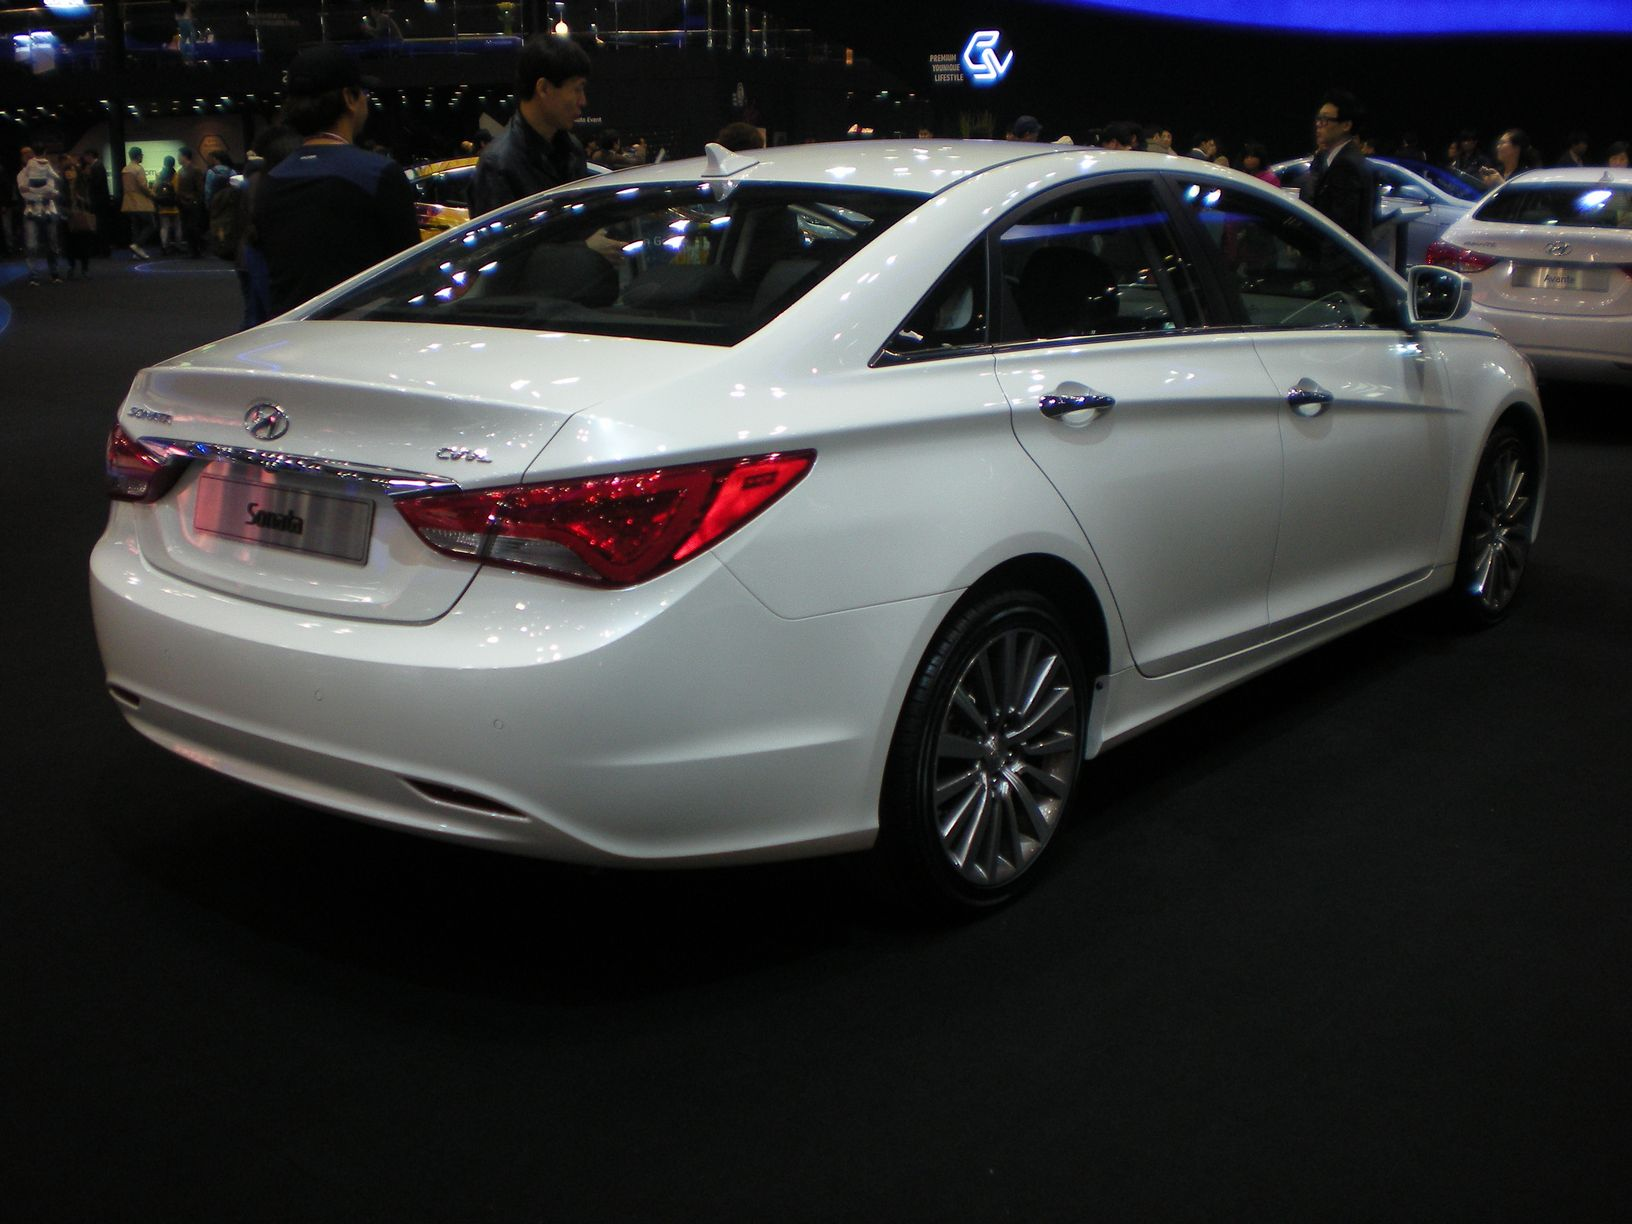 2013 hyundai sonata se 2 0t 4dr sedan 6 spd shiftronic w od. Black Bedroom Furniture Sets. Home Design Ideas